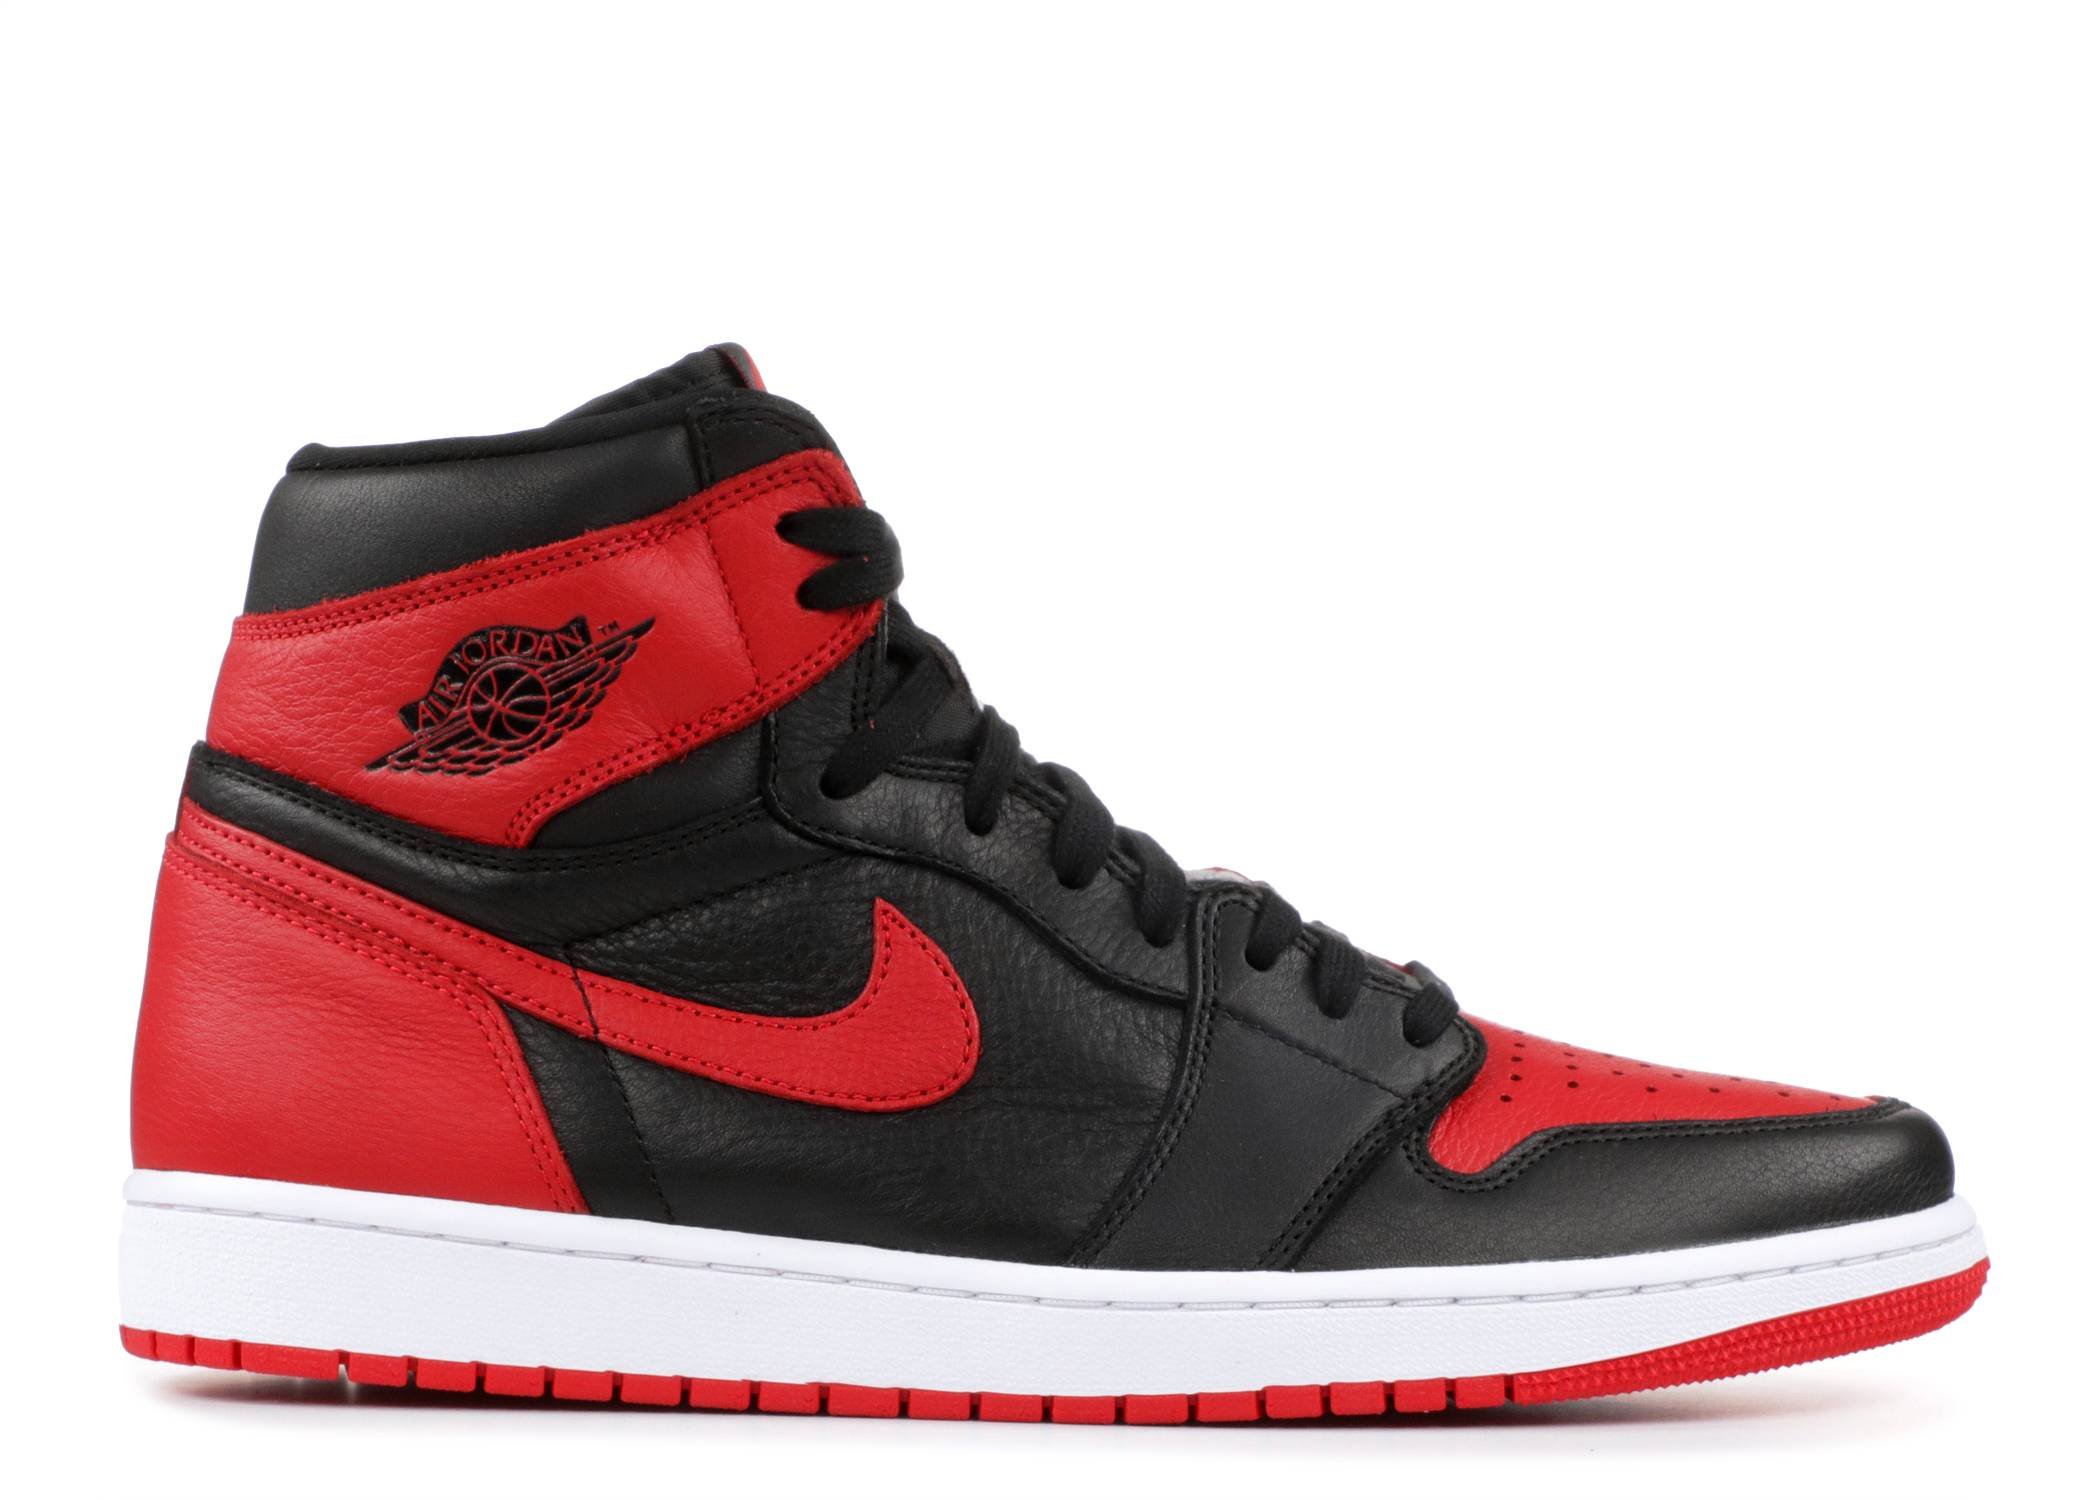 nike air jordan 1 retro high strap blanc noir rouge